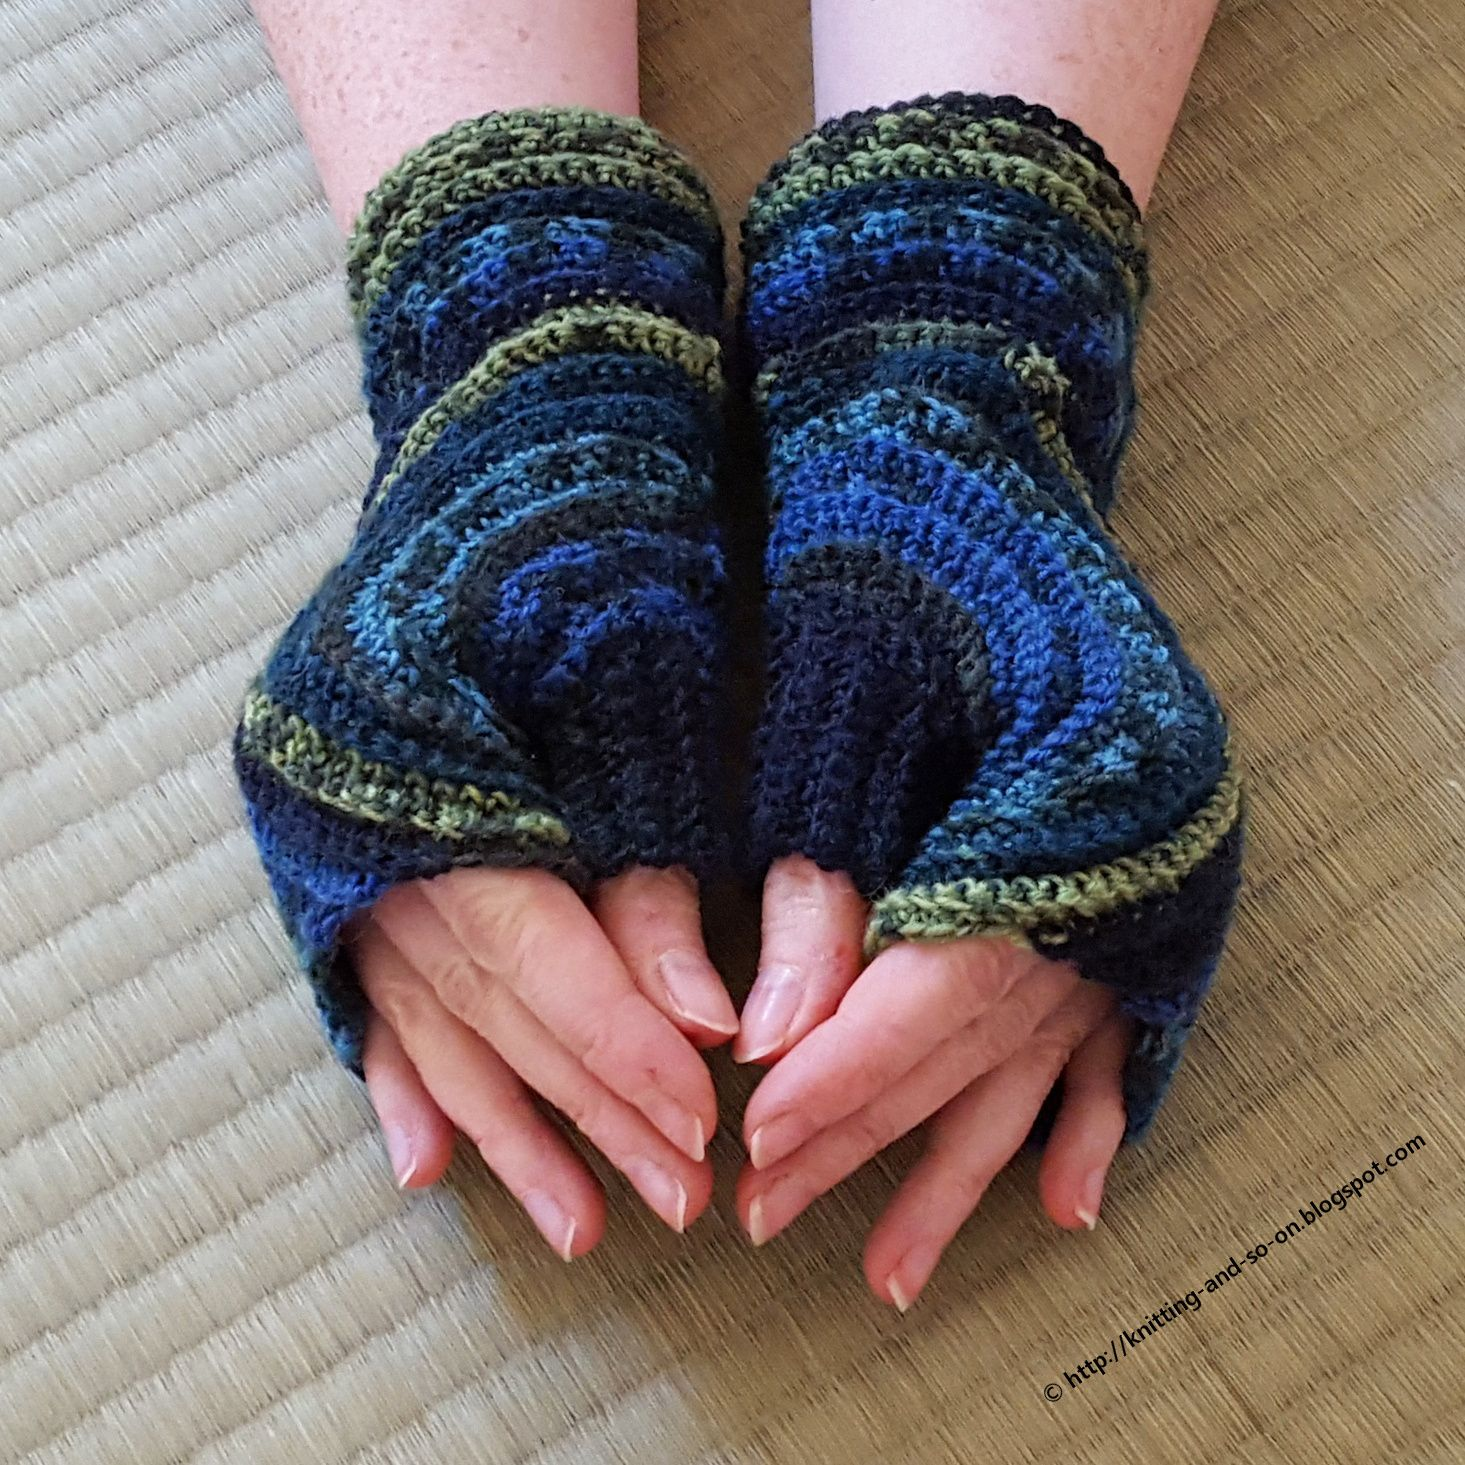 Knitting and so on: Kreisel Fingerless Gloves | Crochet - Winter ...